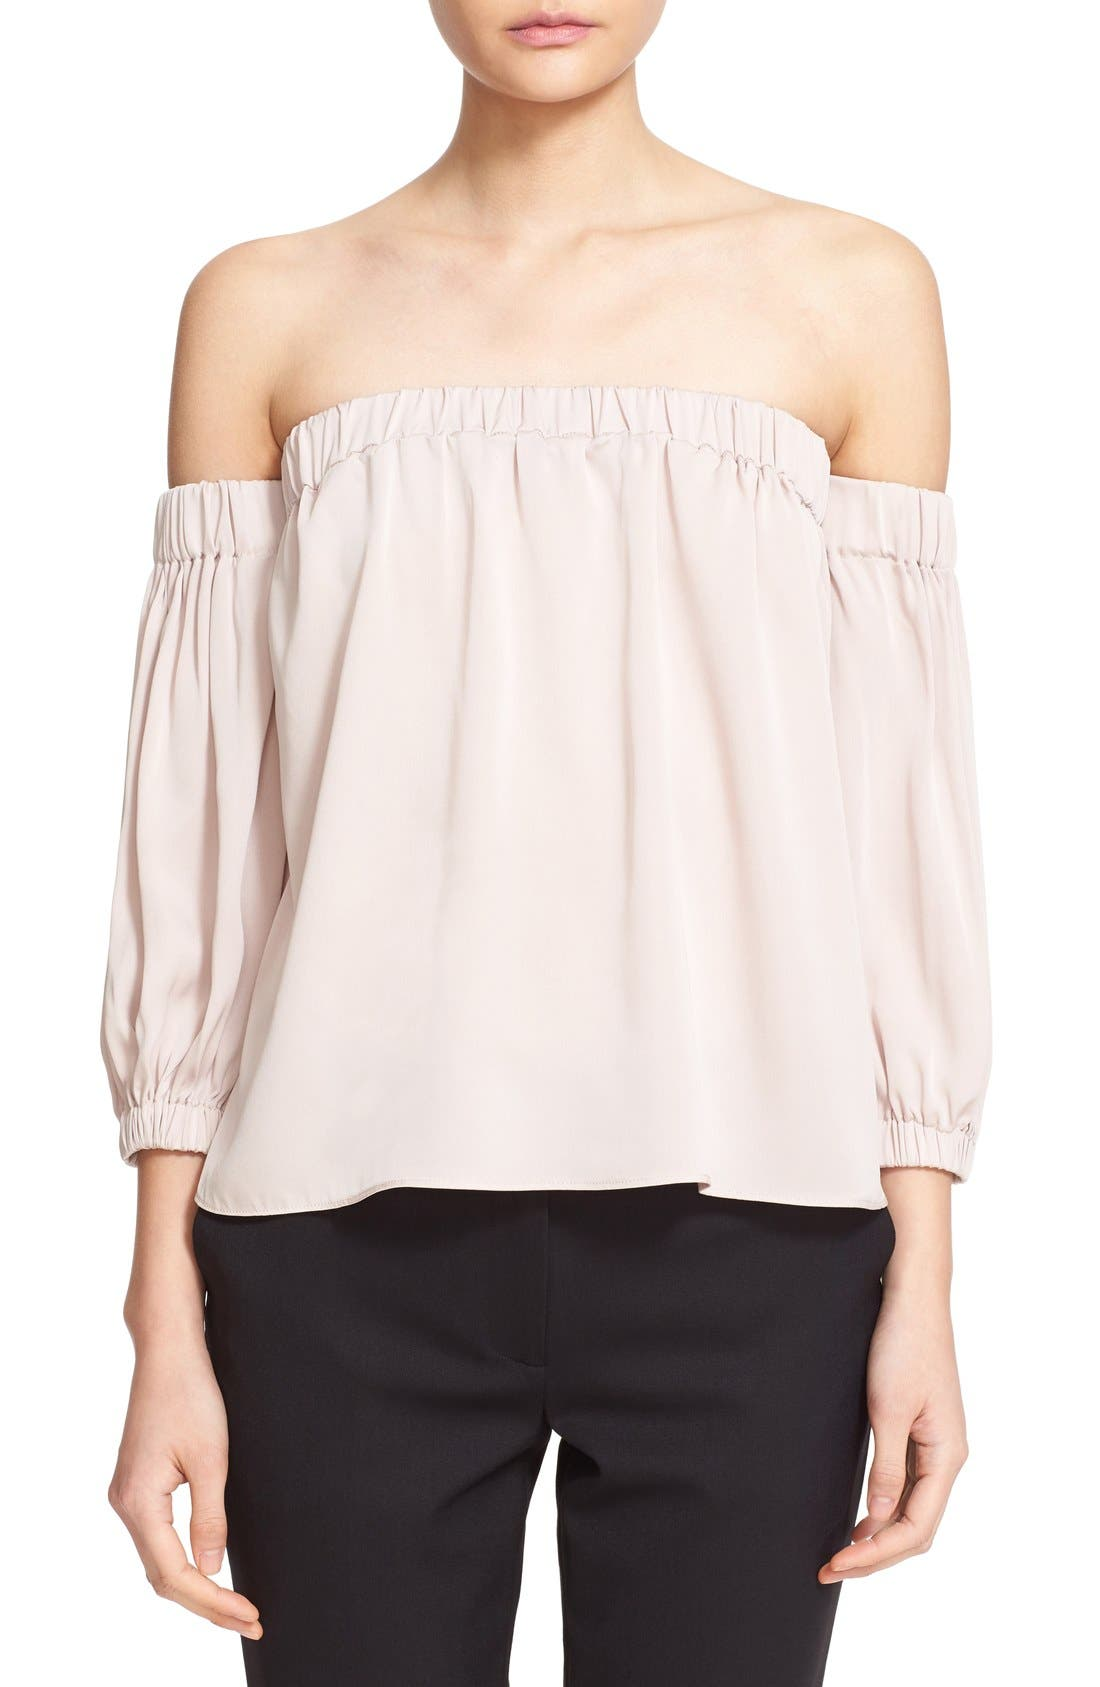 Alternate Image 1 Selected - Milly Stretch Silk Off the Shoulder Blouse